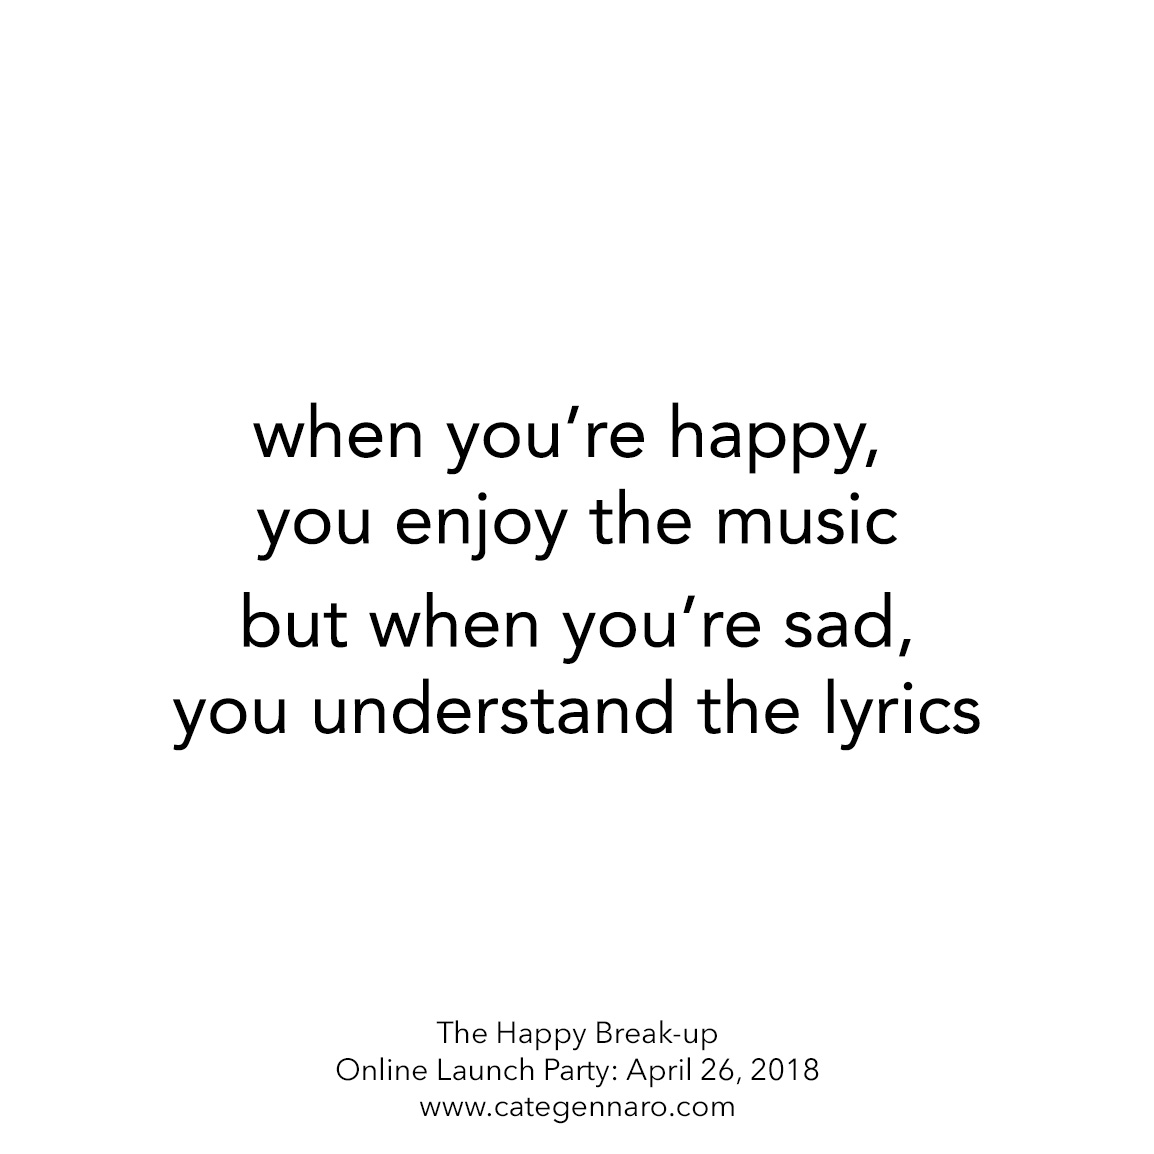 Break-Up playlist, music quote: The Happy Break-Up Online Launch Party